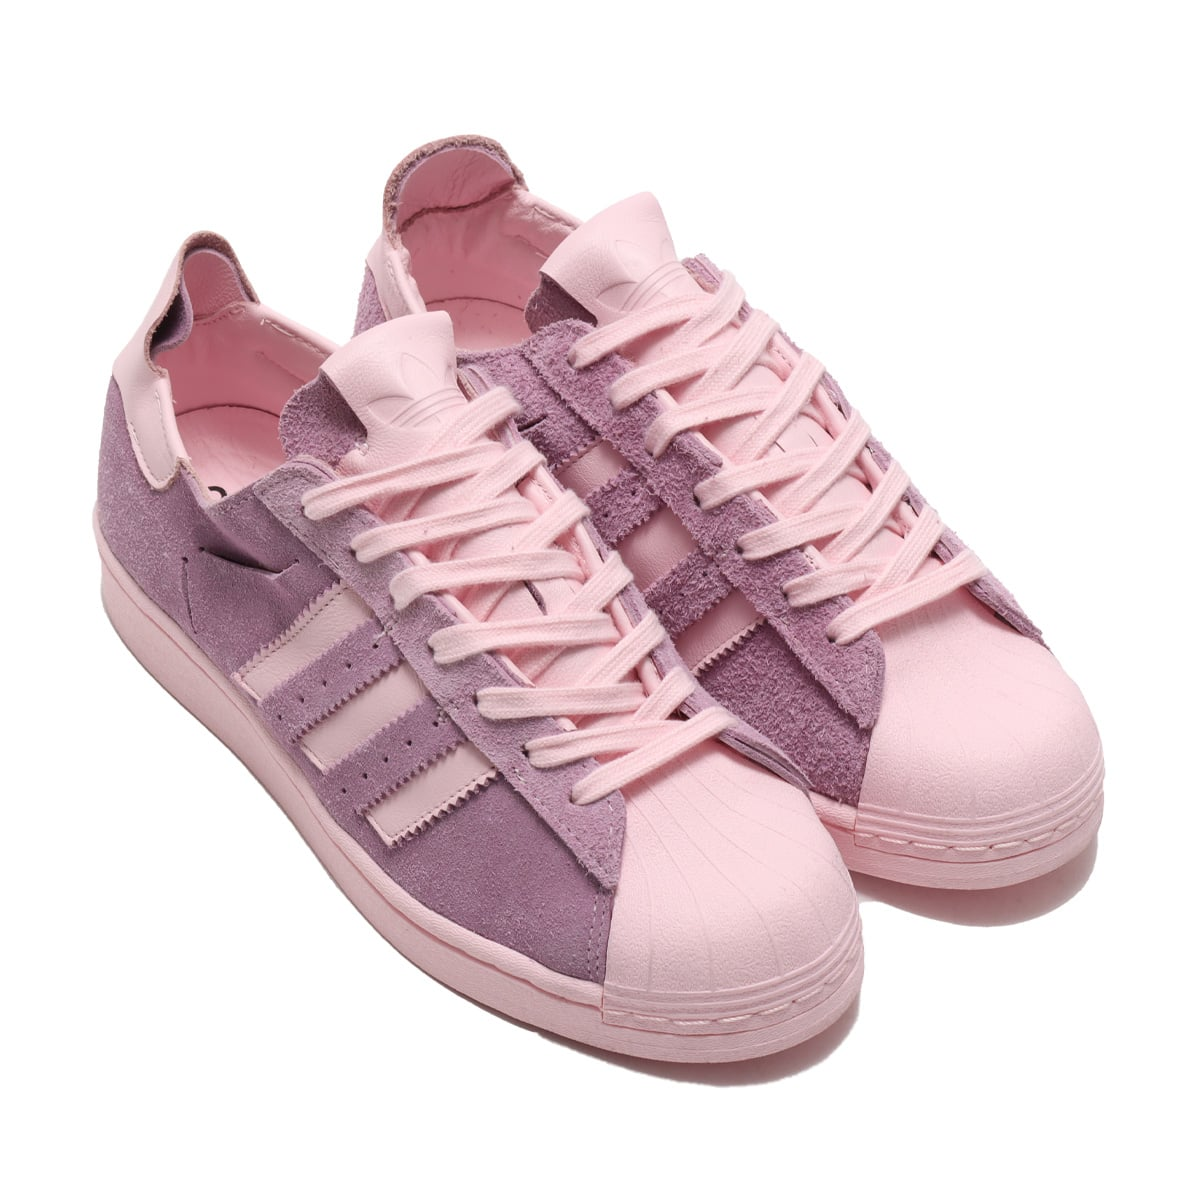 adidas SST MINIMALIST ICONS CLEAR PINK/CLEAR PINK/CLEAR PINK 21SS-I_photo_large